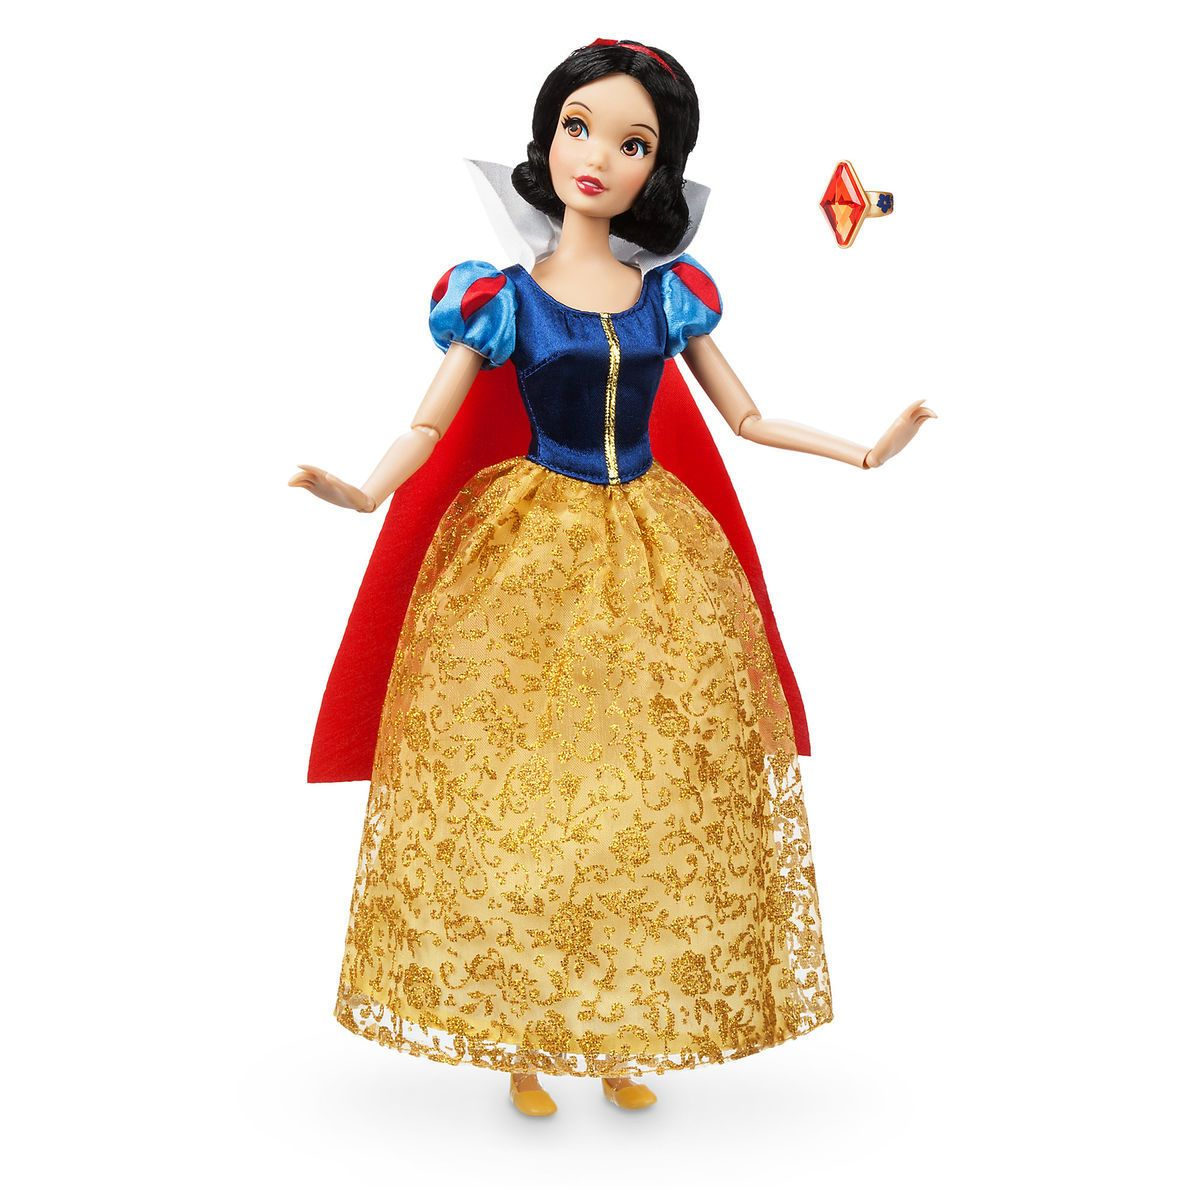 Product Image Of Snow White Classic Doll With Ring 11 1 2 1 Disney Princess Dolls Disney Princess Snow White Snow White Doll